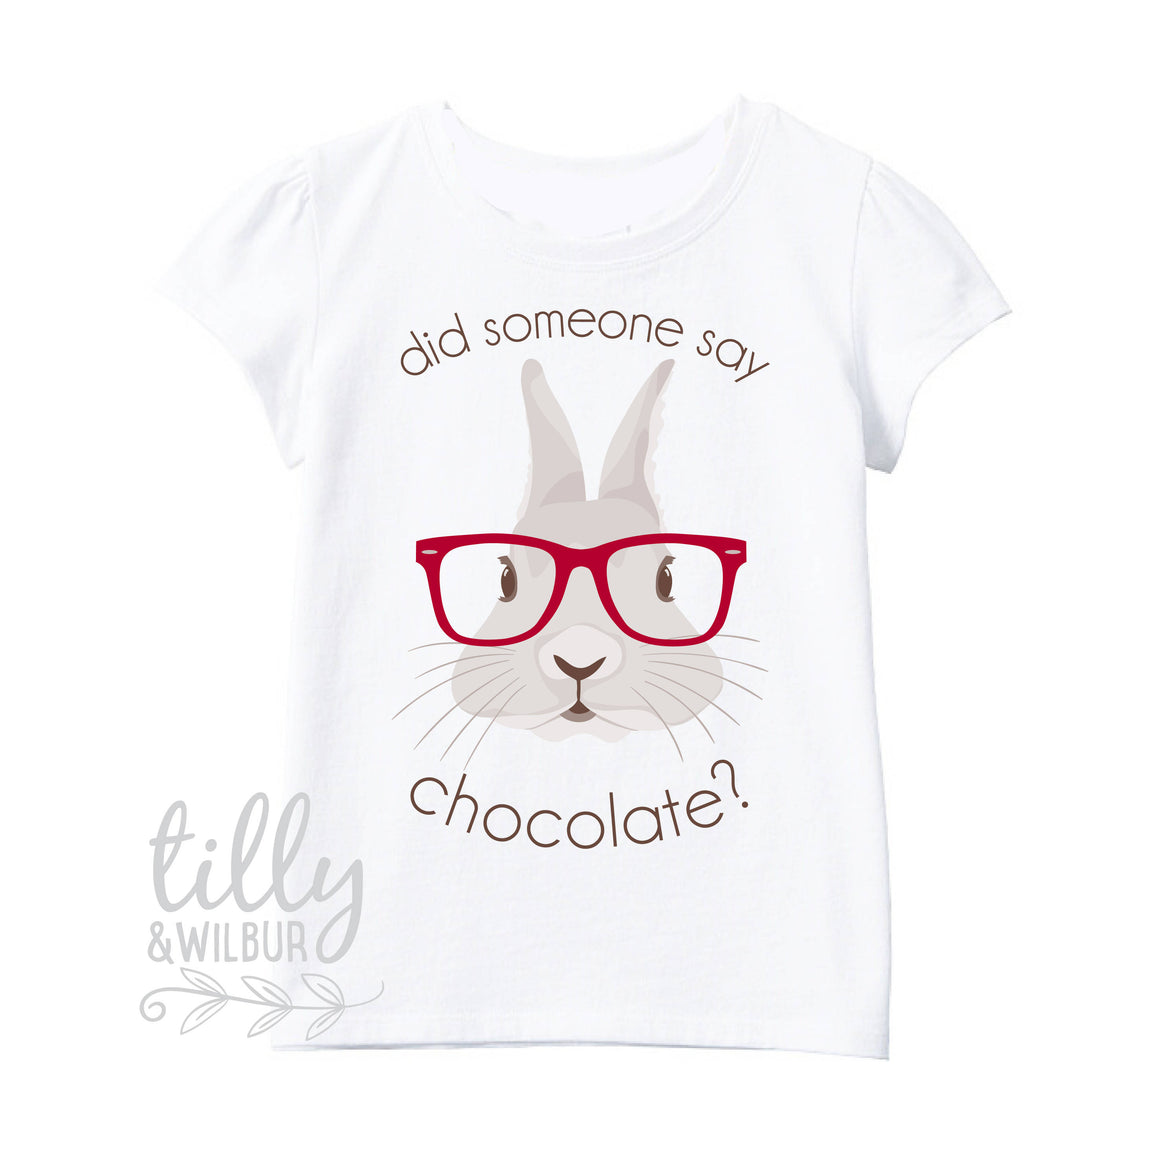 Easter T-Shirt For Girls, Did Someone Say Chocolate, Easter Bunny Shirt, Easter Egg Hunt, Easter Gift, Girls Easter Gift, Girls Easter Shirt